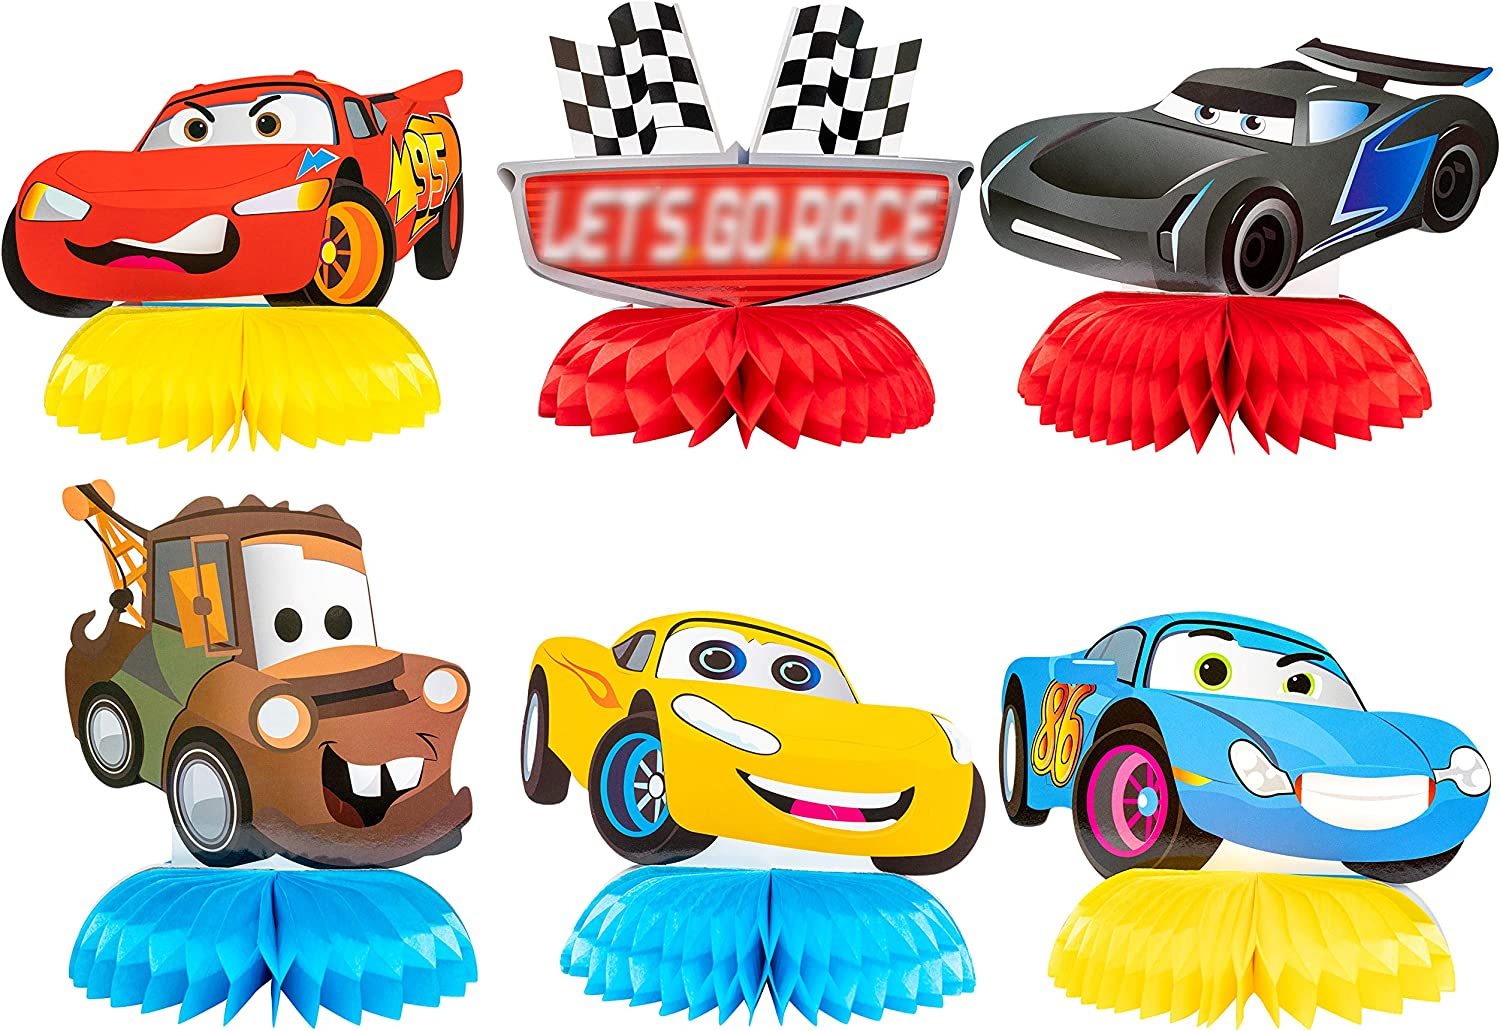 PANTIDE 6 Pieces Race Car Honeycomb Centerpieces for Party Table Decor, Double-Sided Racing Table Topper for Birthday Party Supplies Favors, Let's Go Racing Themed Photo Booth Props for Baby Shower